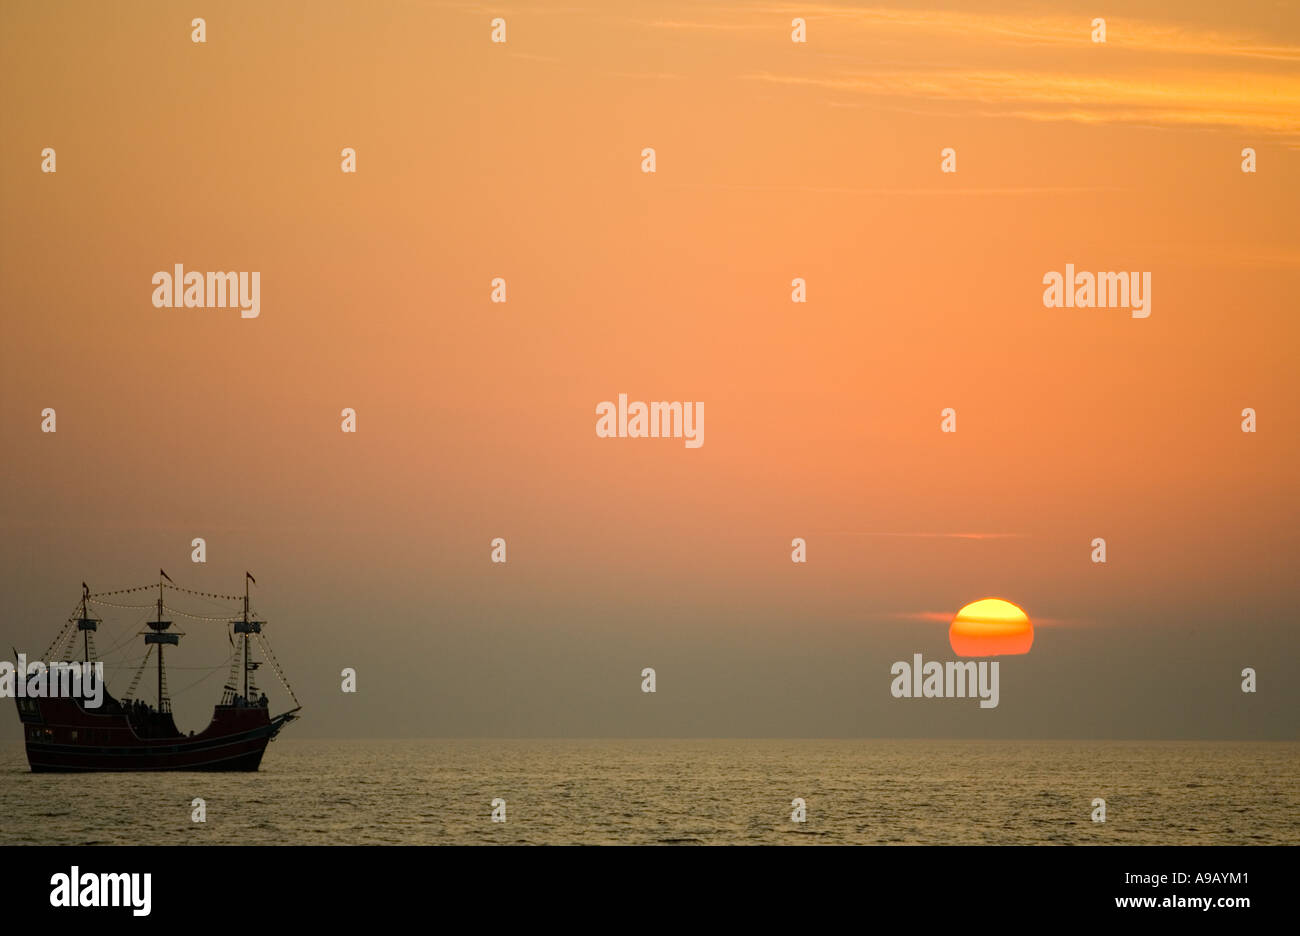 Replica of a pirate ship sailing at sunset - Stock Image